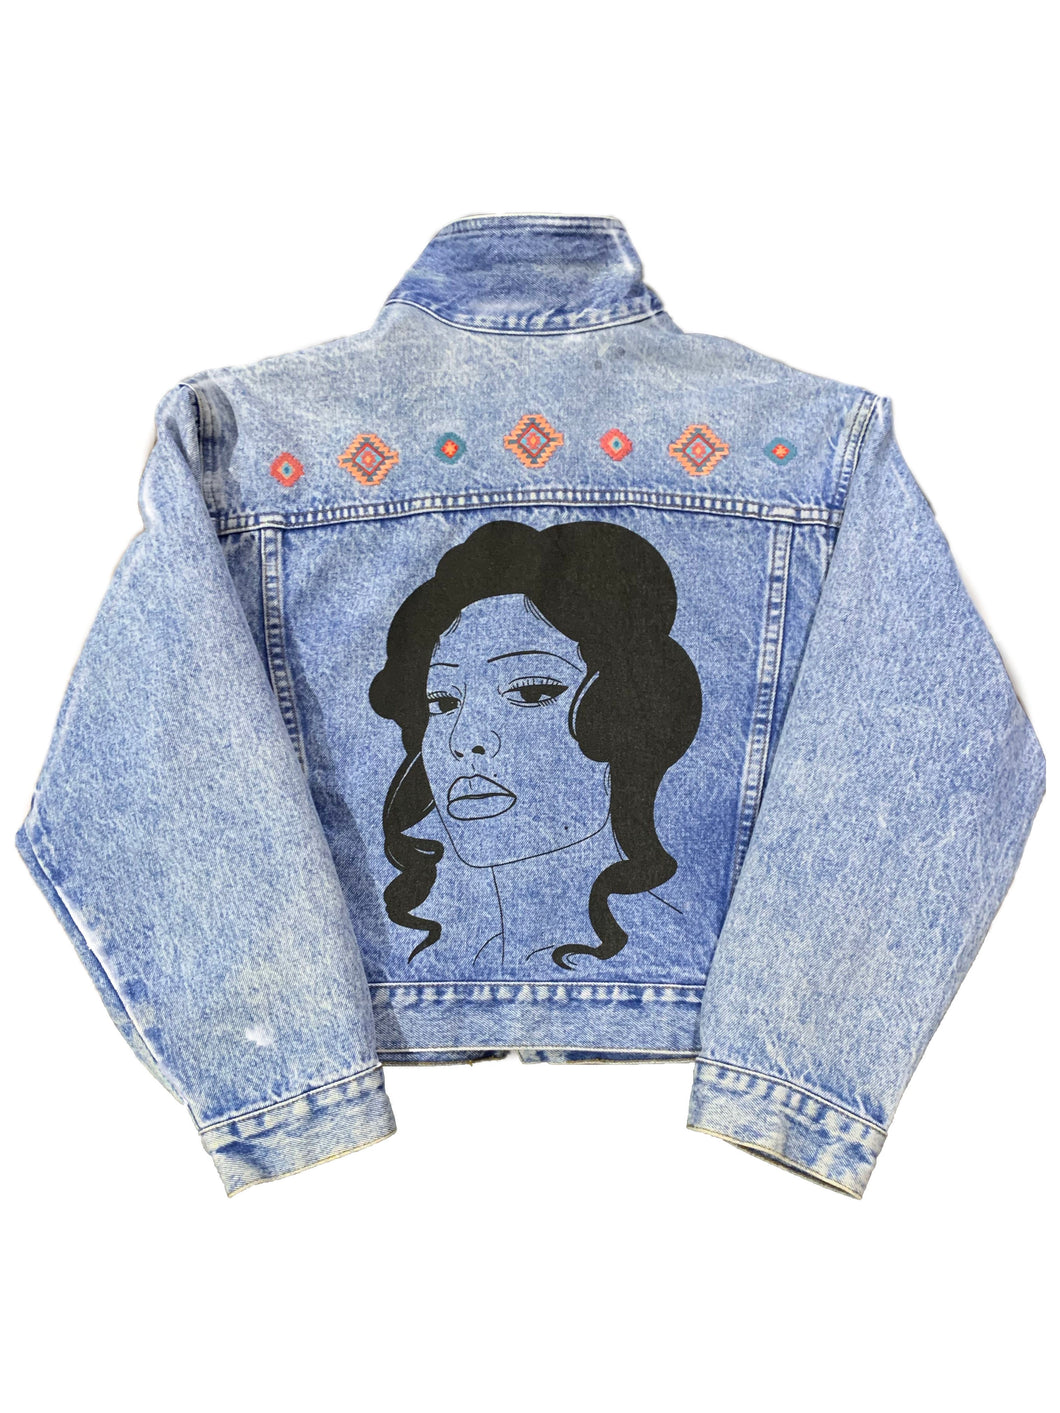 FF BESPOKE Vintage Denim Jacket #2